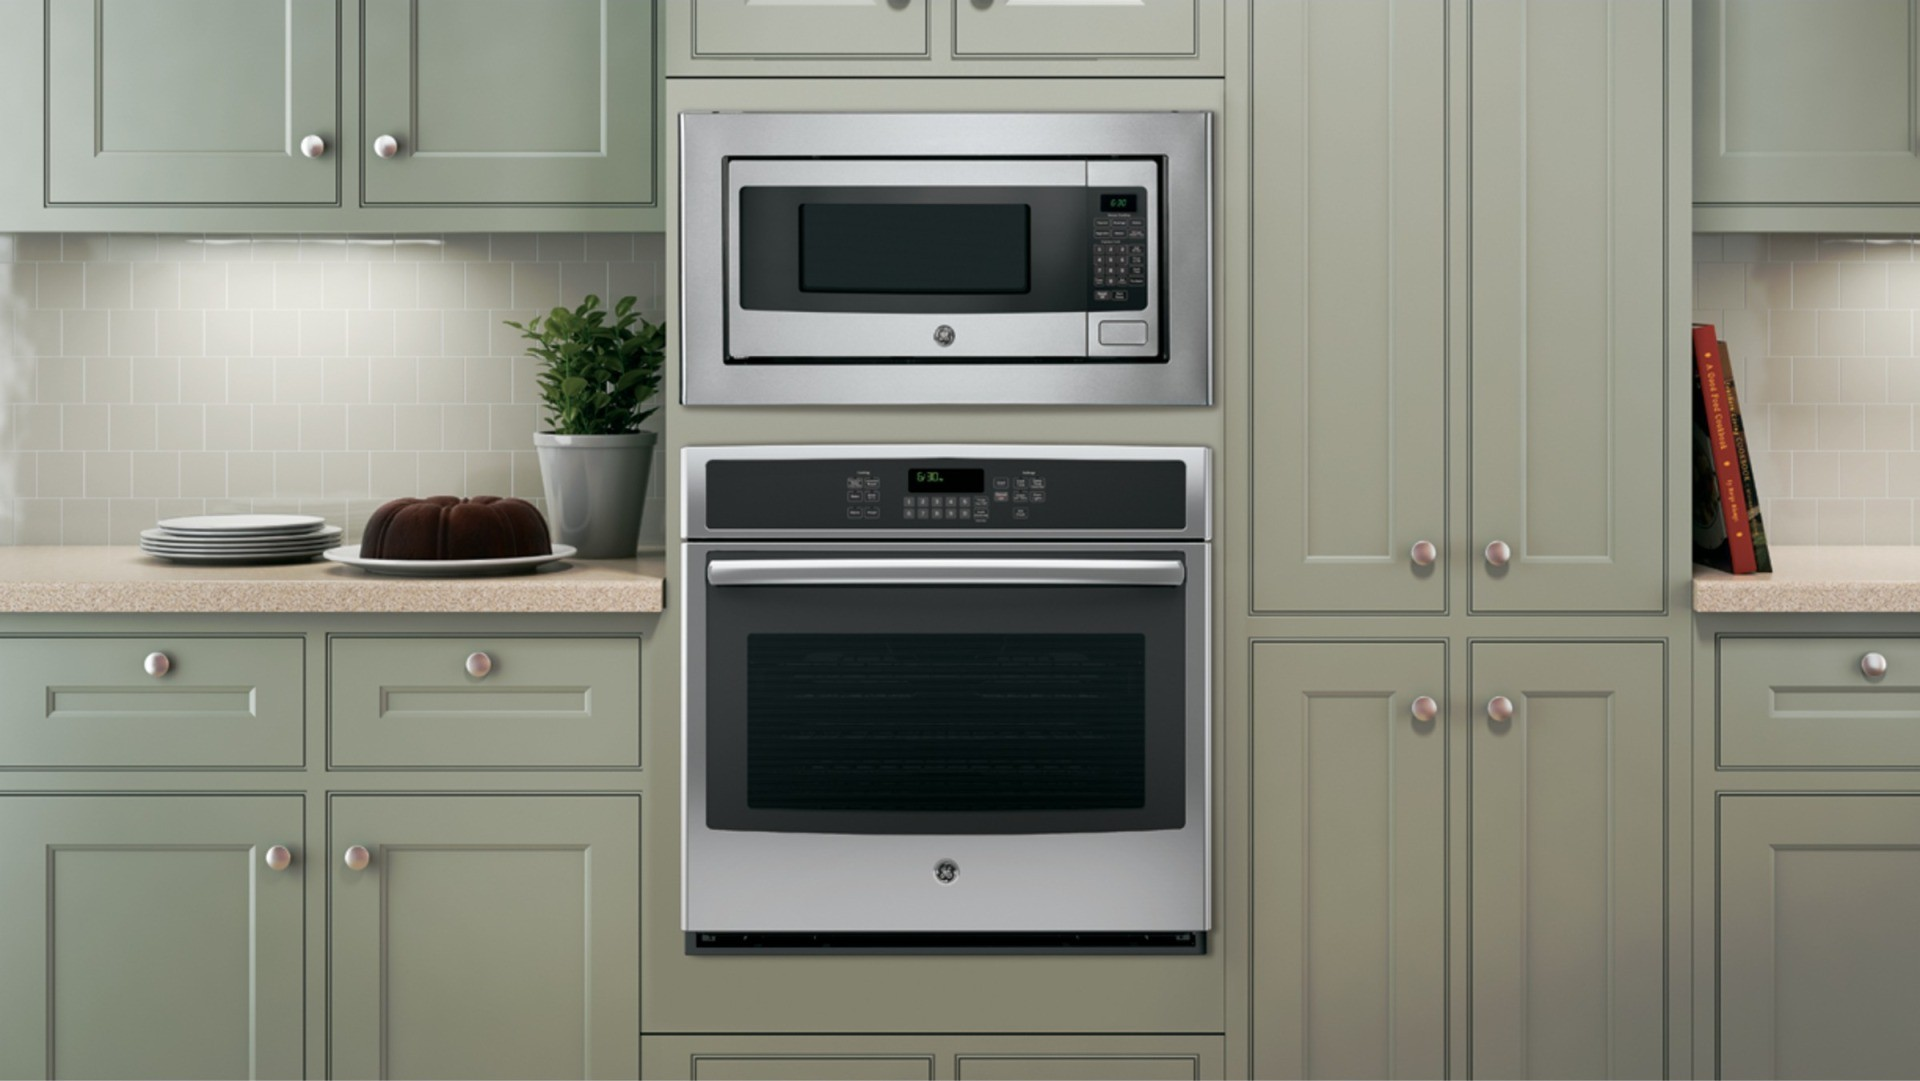 Ge Profile Pem31sfss 1 Cu Ft Microwave Oven Countertop Or Built In Hover To Zoom Main Feature